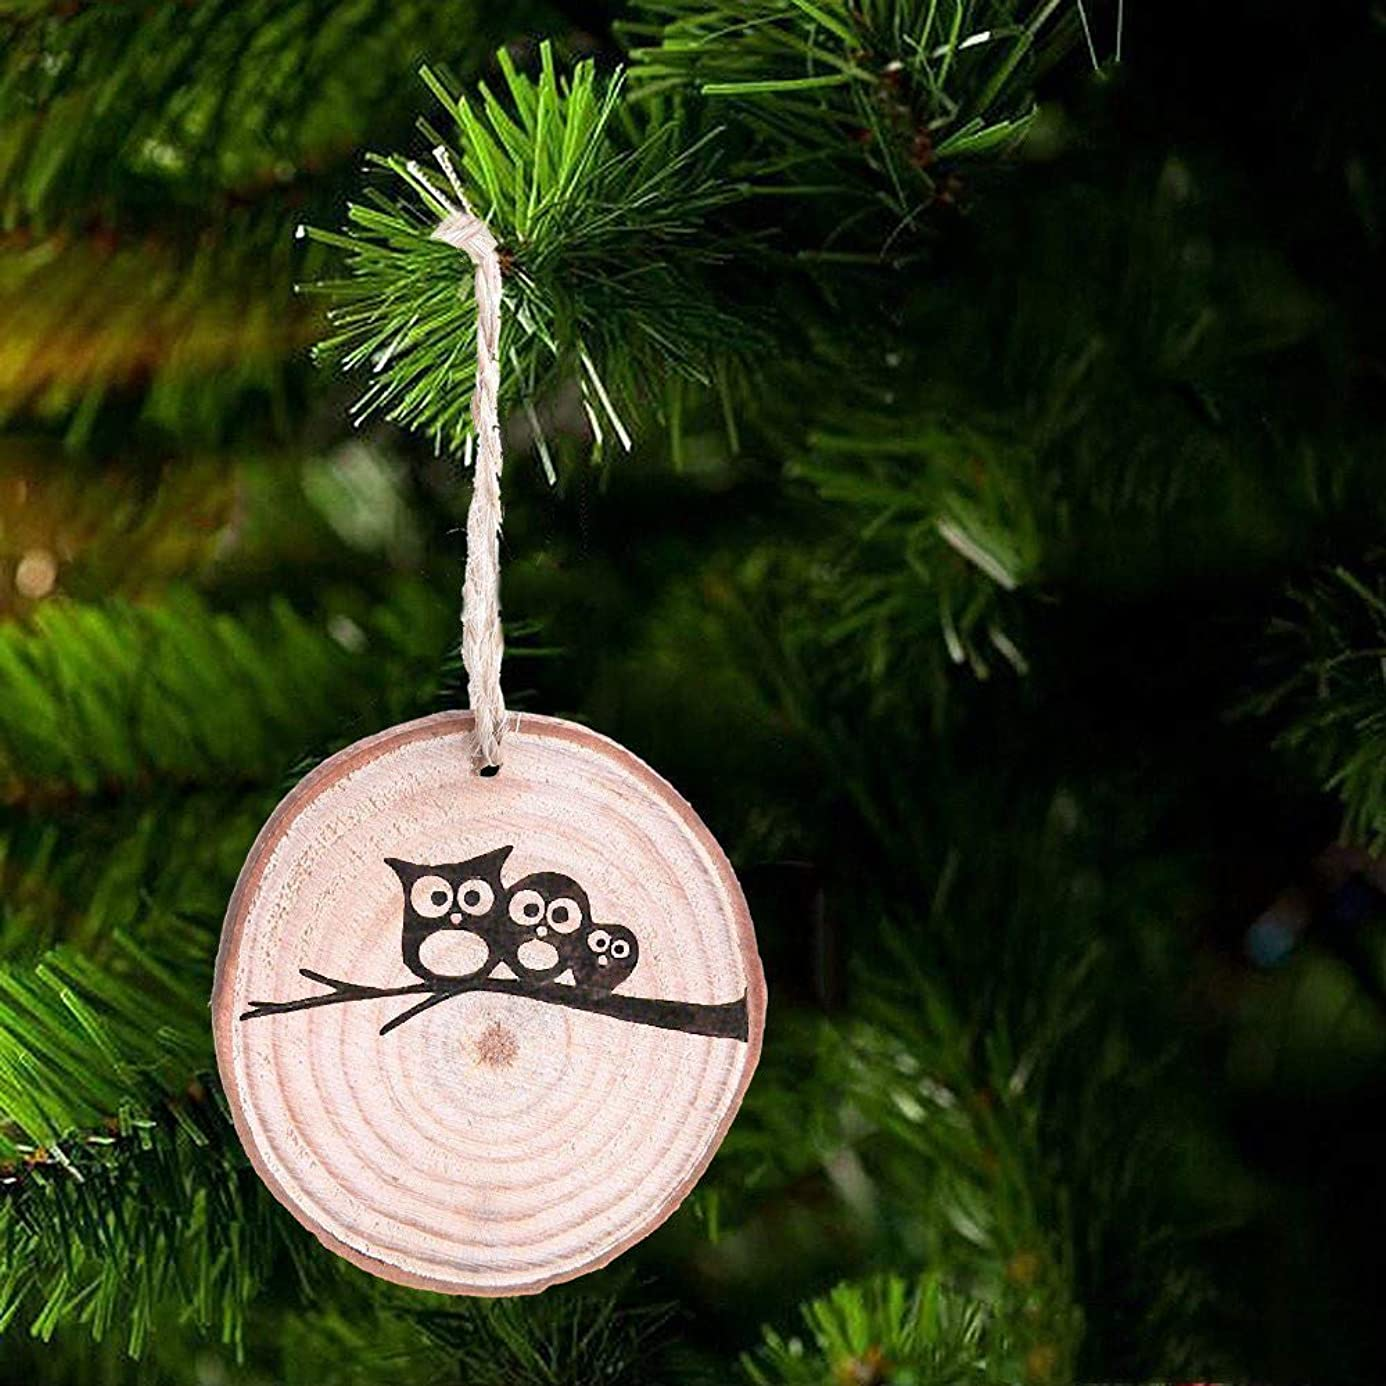 Iusun Christmas Tree Decoration Wooden Rounded Pine Chips Hanging Xmas Tree Waterproof Pendants DIY Ornament Wedding Party Holiday New Year Decor- Shipping From USA (Brown)